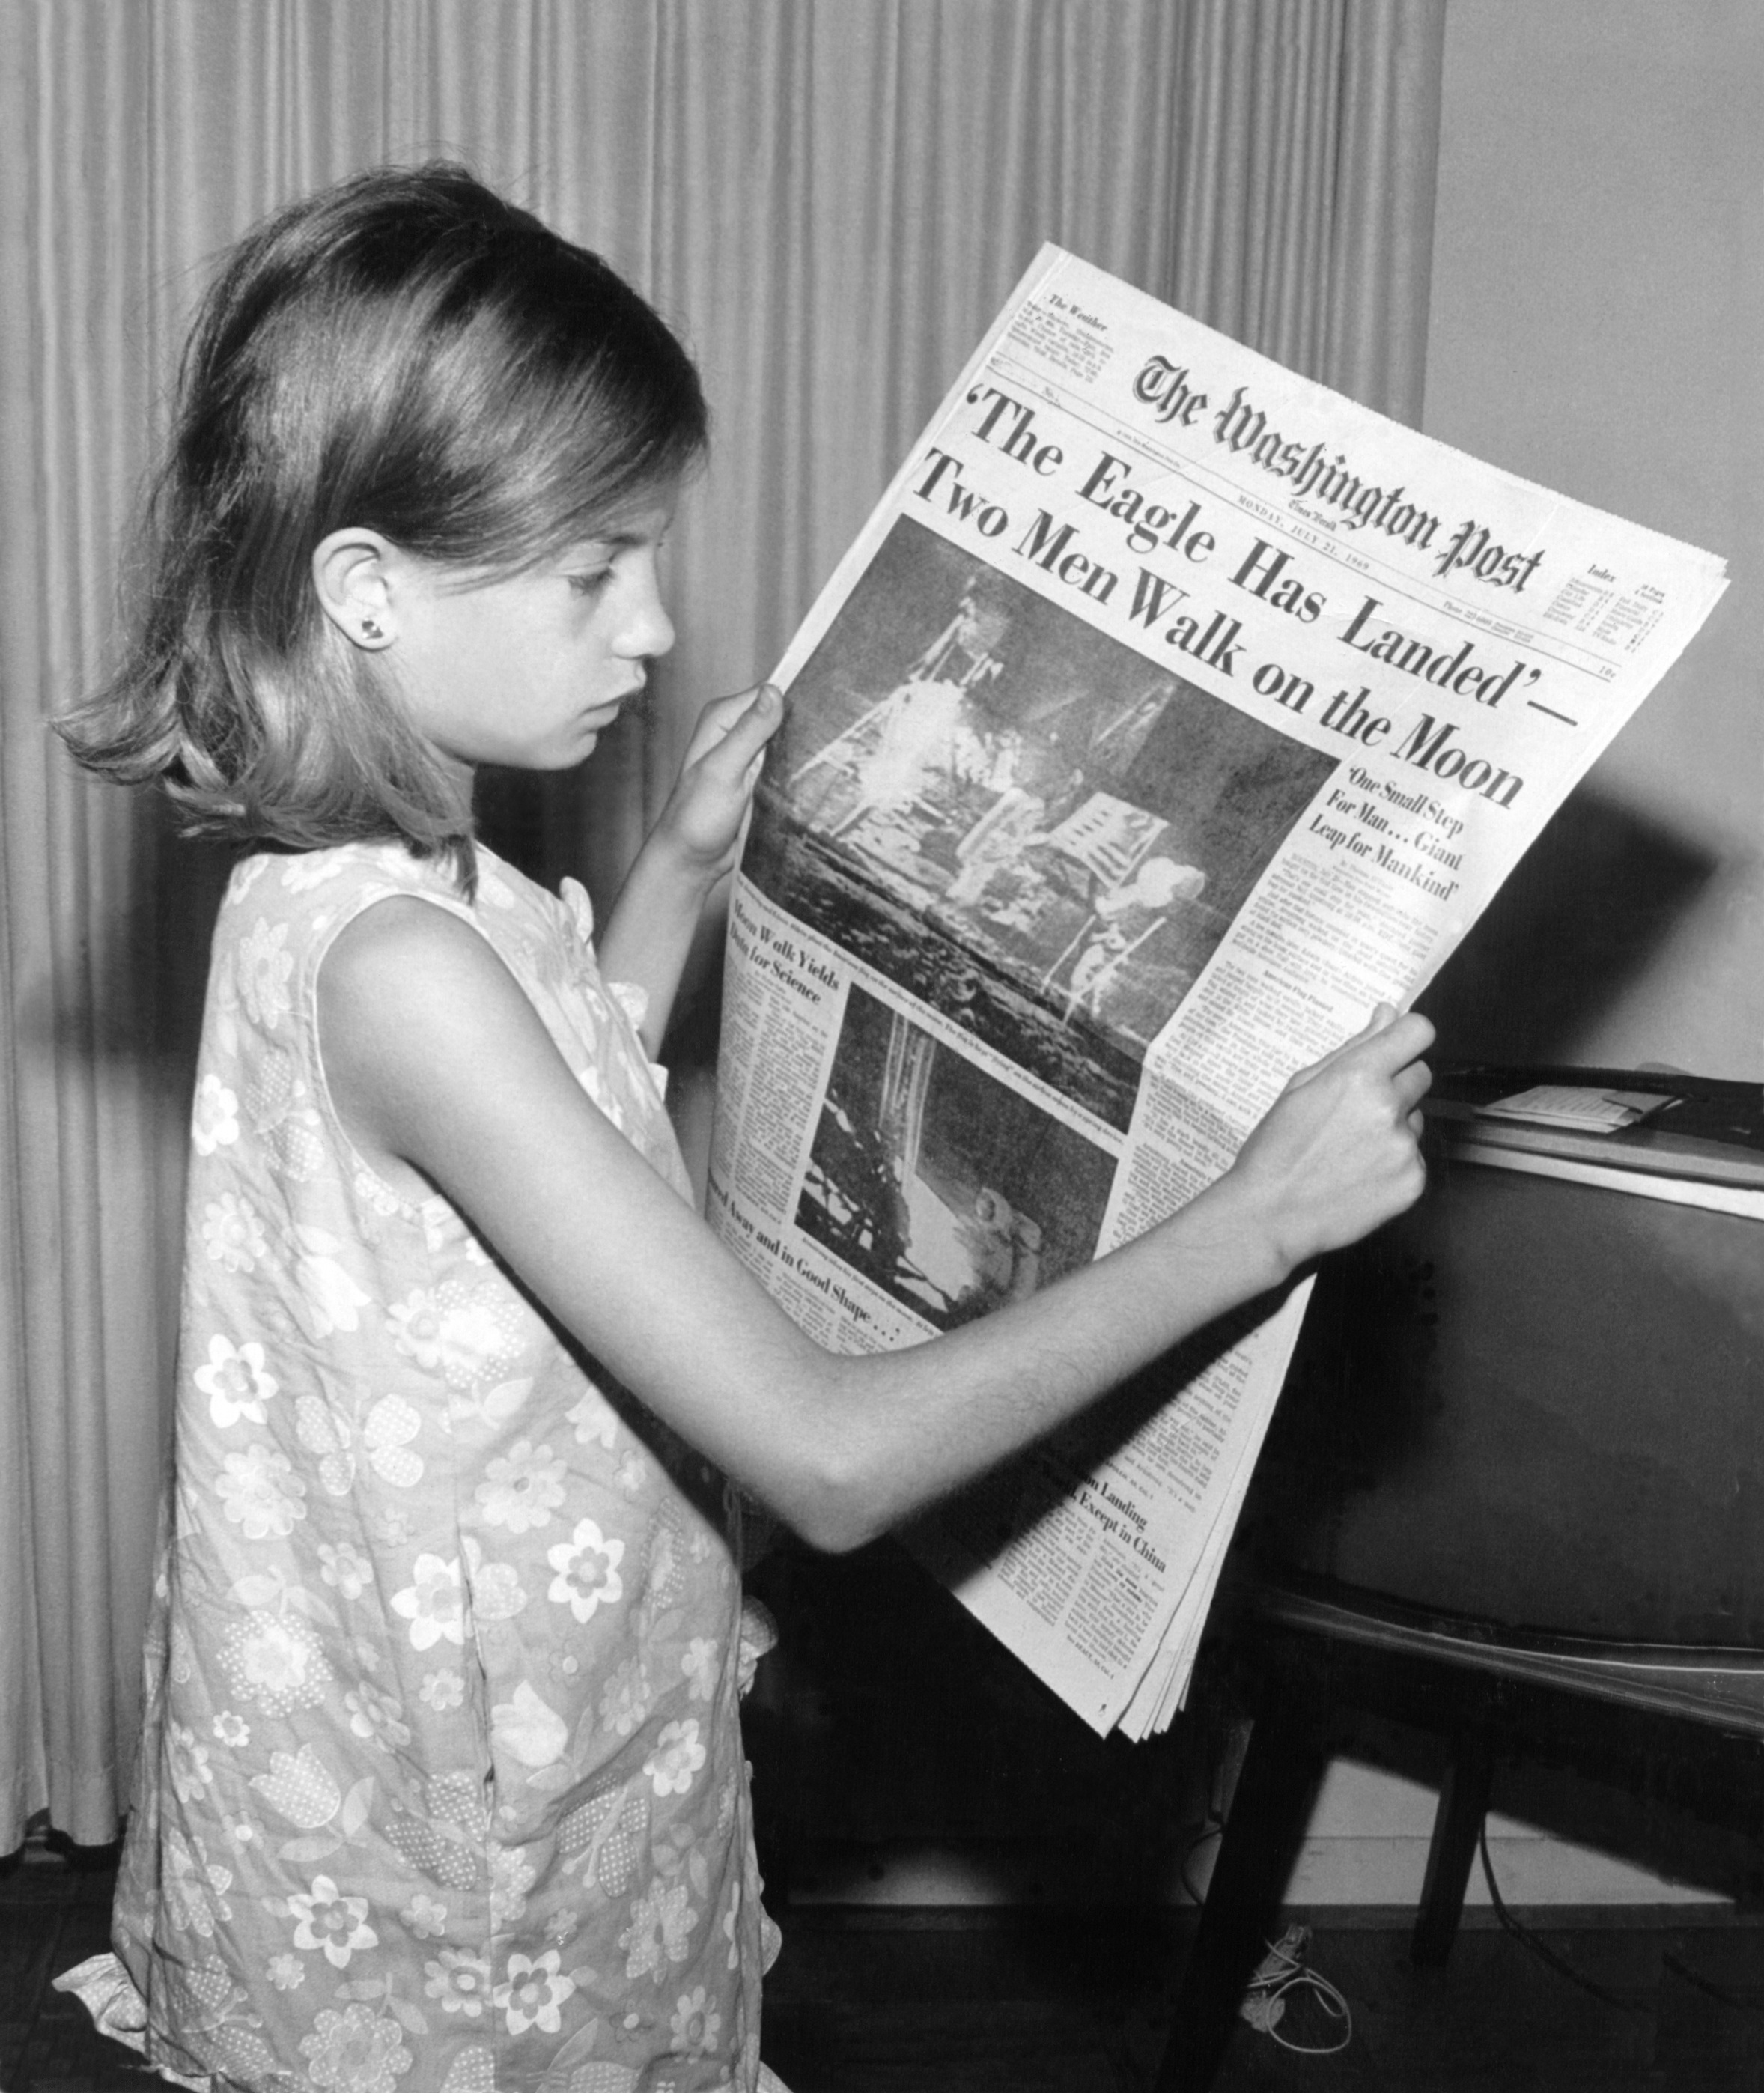 girl reading the newspaper